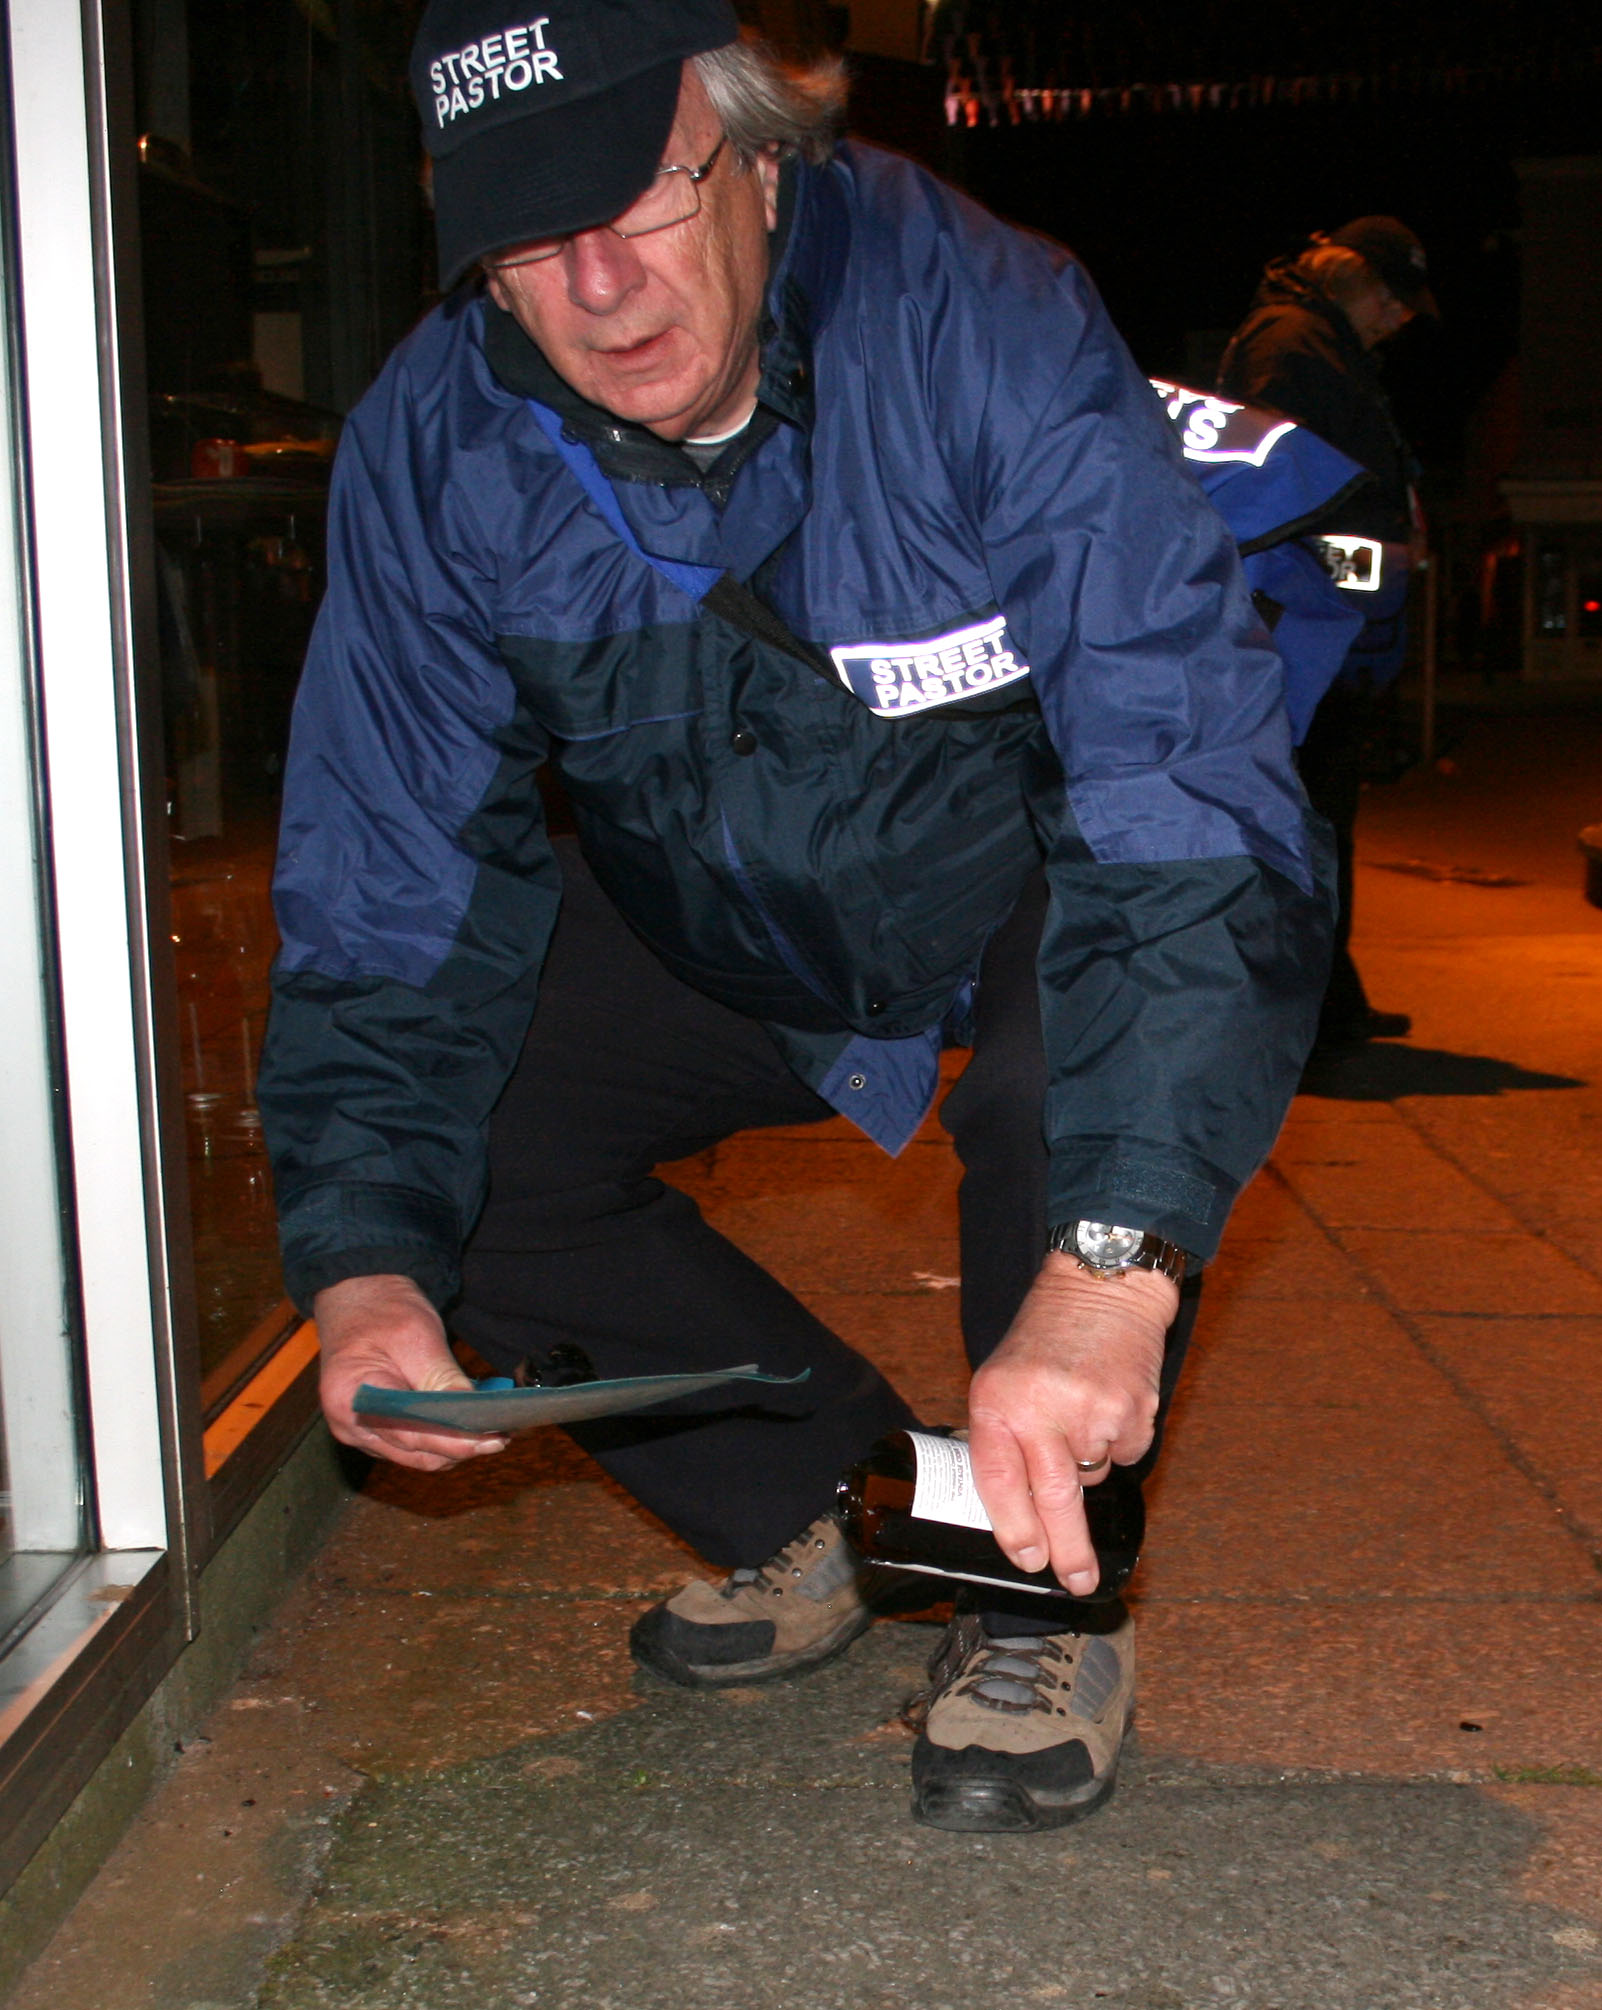 Sweeping up broken glass - Victoria Square - May 2015